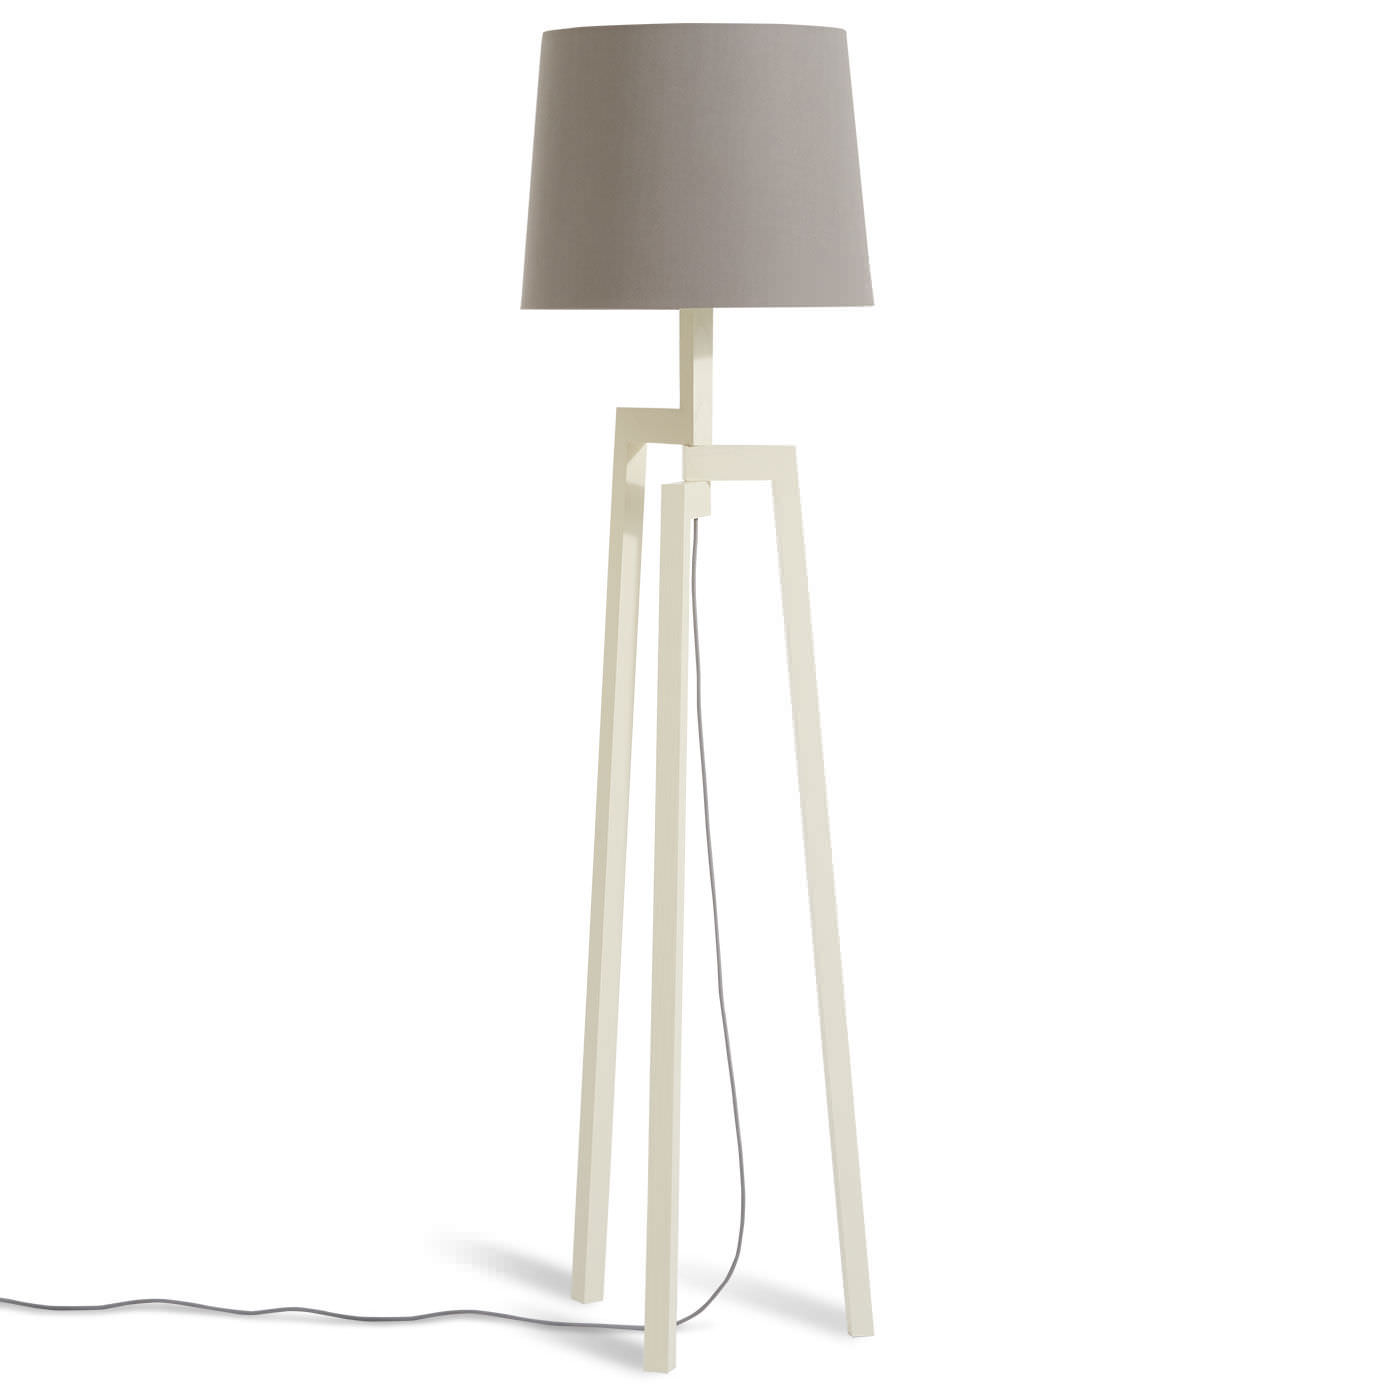 Floor-standing lamp / contemporary / fabric / ash - STILT - BLU DOT